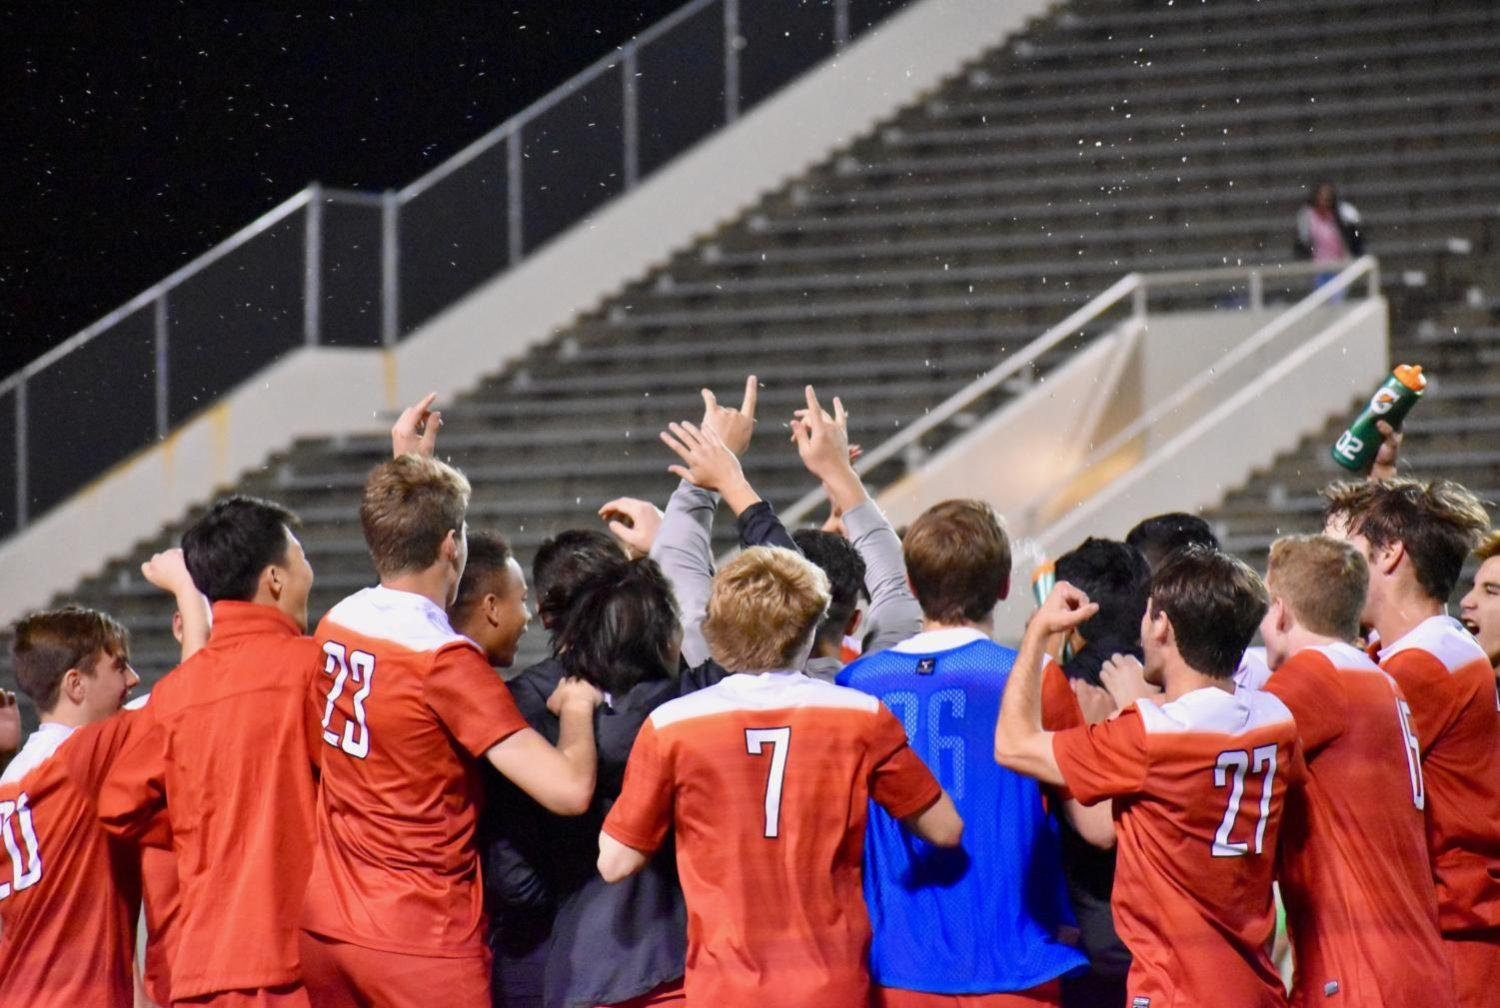 After defeating Mesquite, players huddle up and celebrate their victory after the game at the Wildcat-Ram Stadium. The Coppell Cowboys took home a victory with a score of 3-0, which leads them to the upcoming Regional Tournament in Round Rock next weekend.